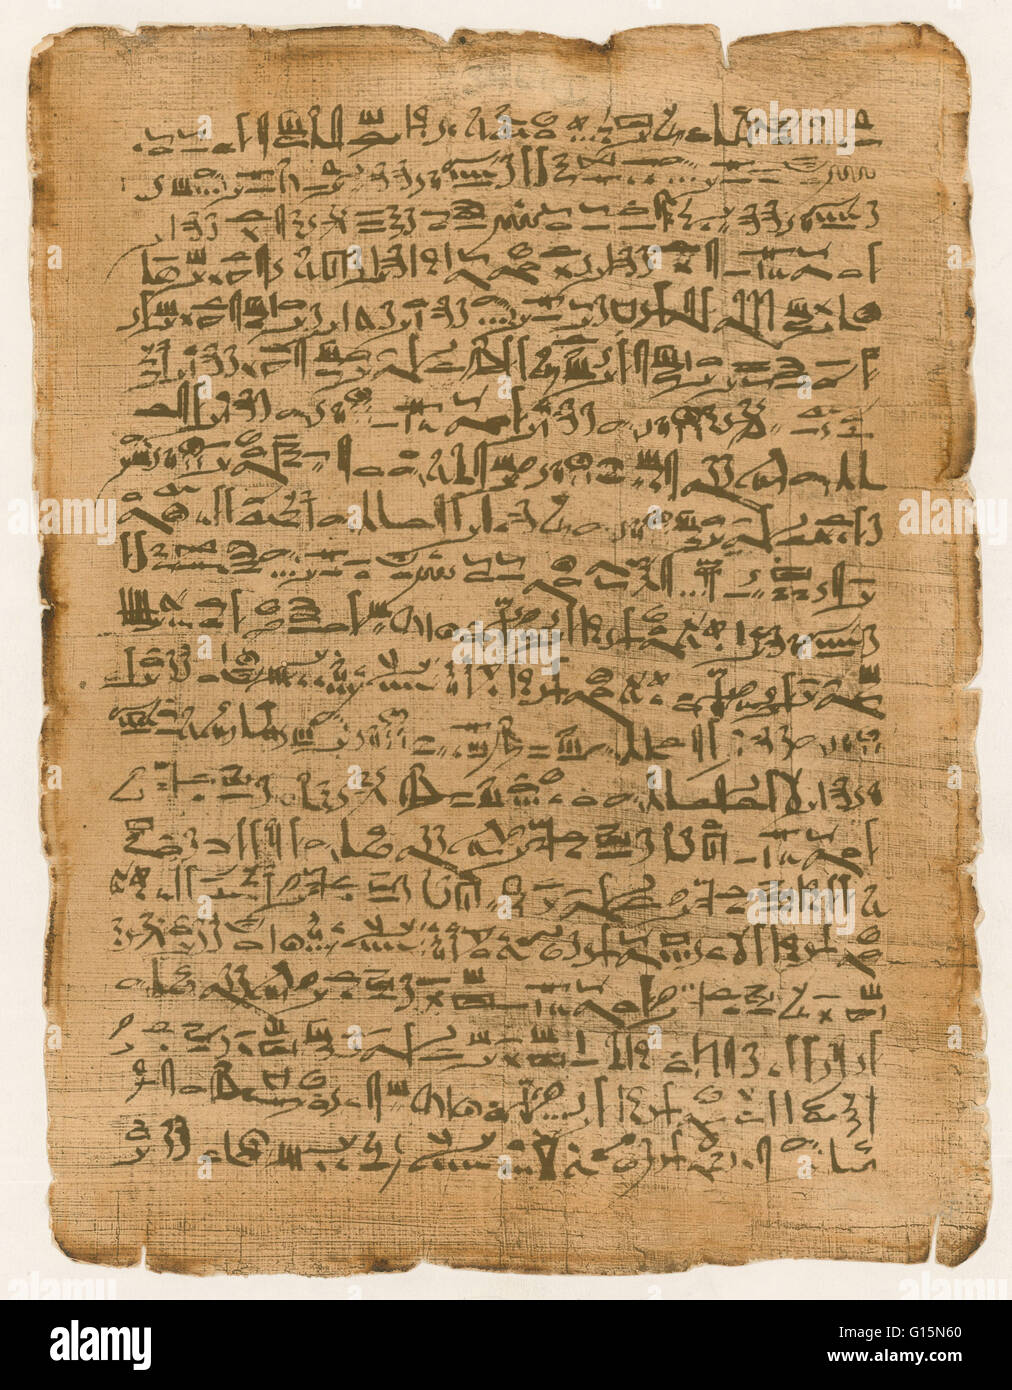 http://c8.alamy.com/comp/G15N60/papyrus-is-a-thick-paper-like-material-produced-from-the-pith-of-the-G15N60.jpg